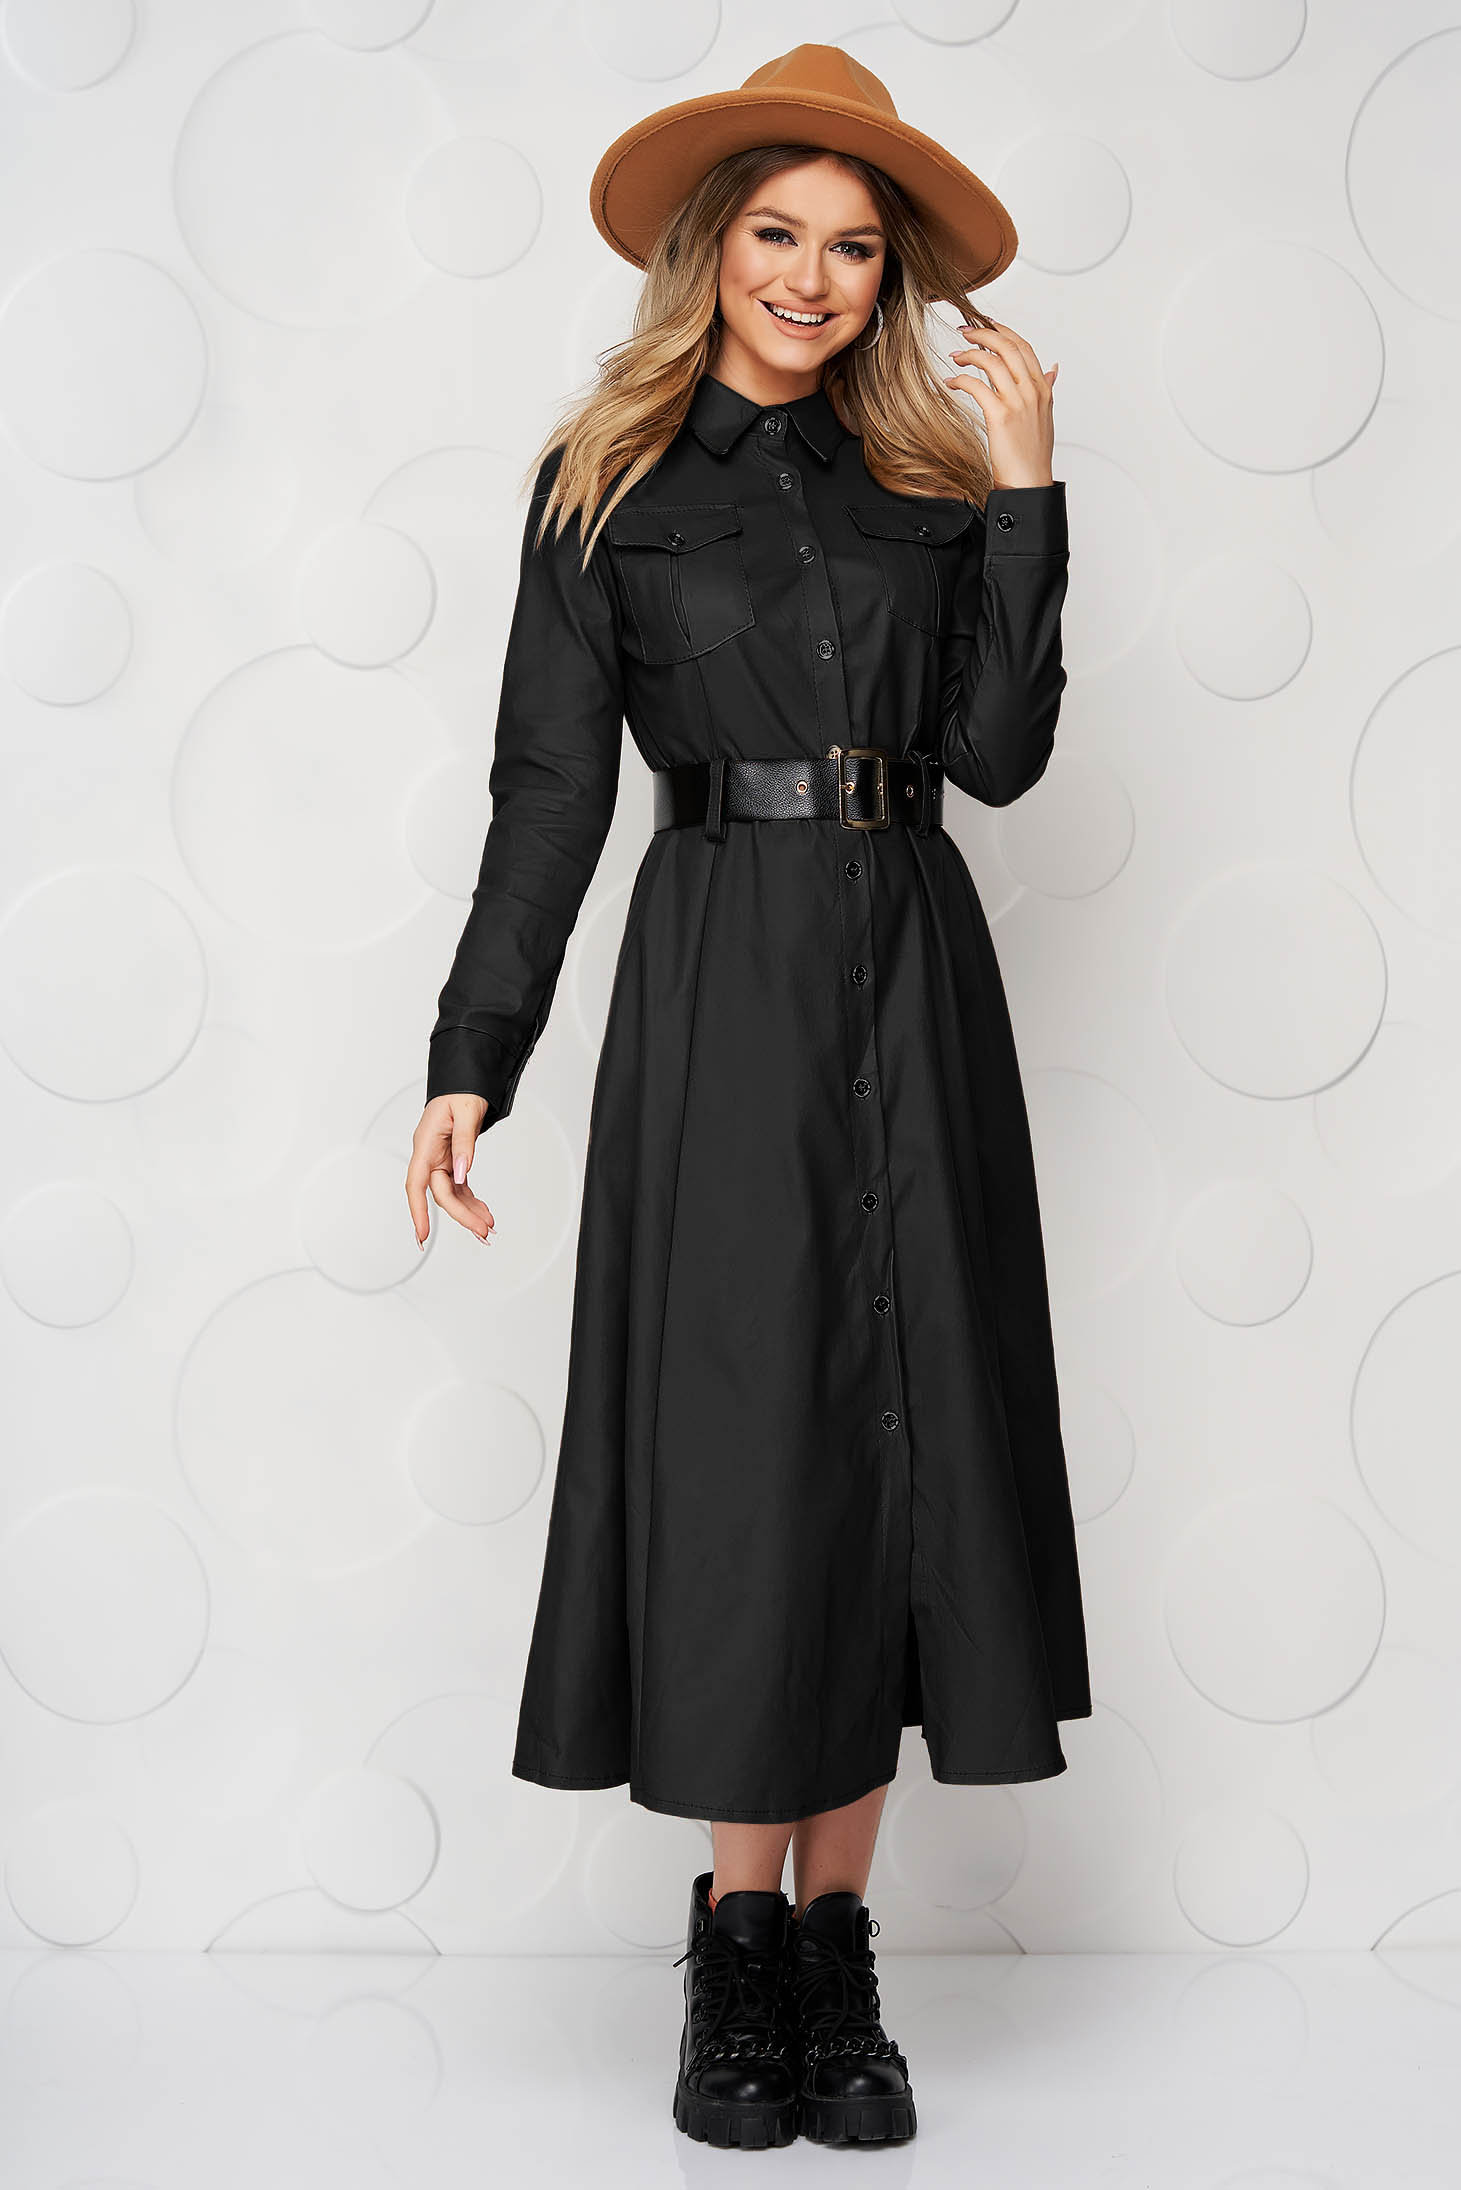 Black dress from ecological leather cloche midi